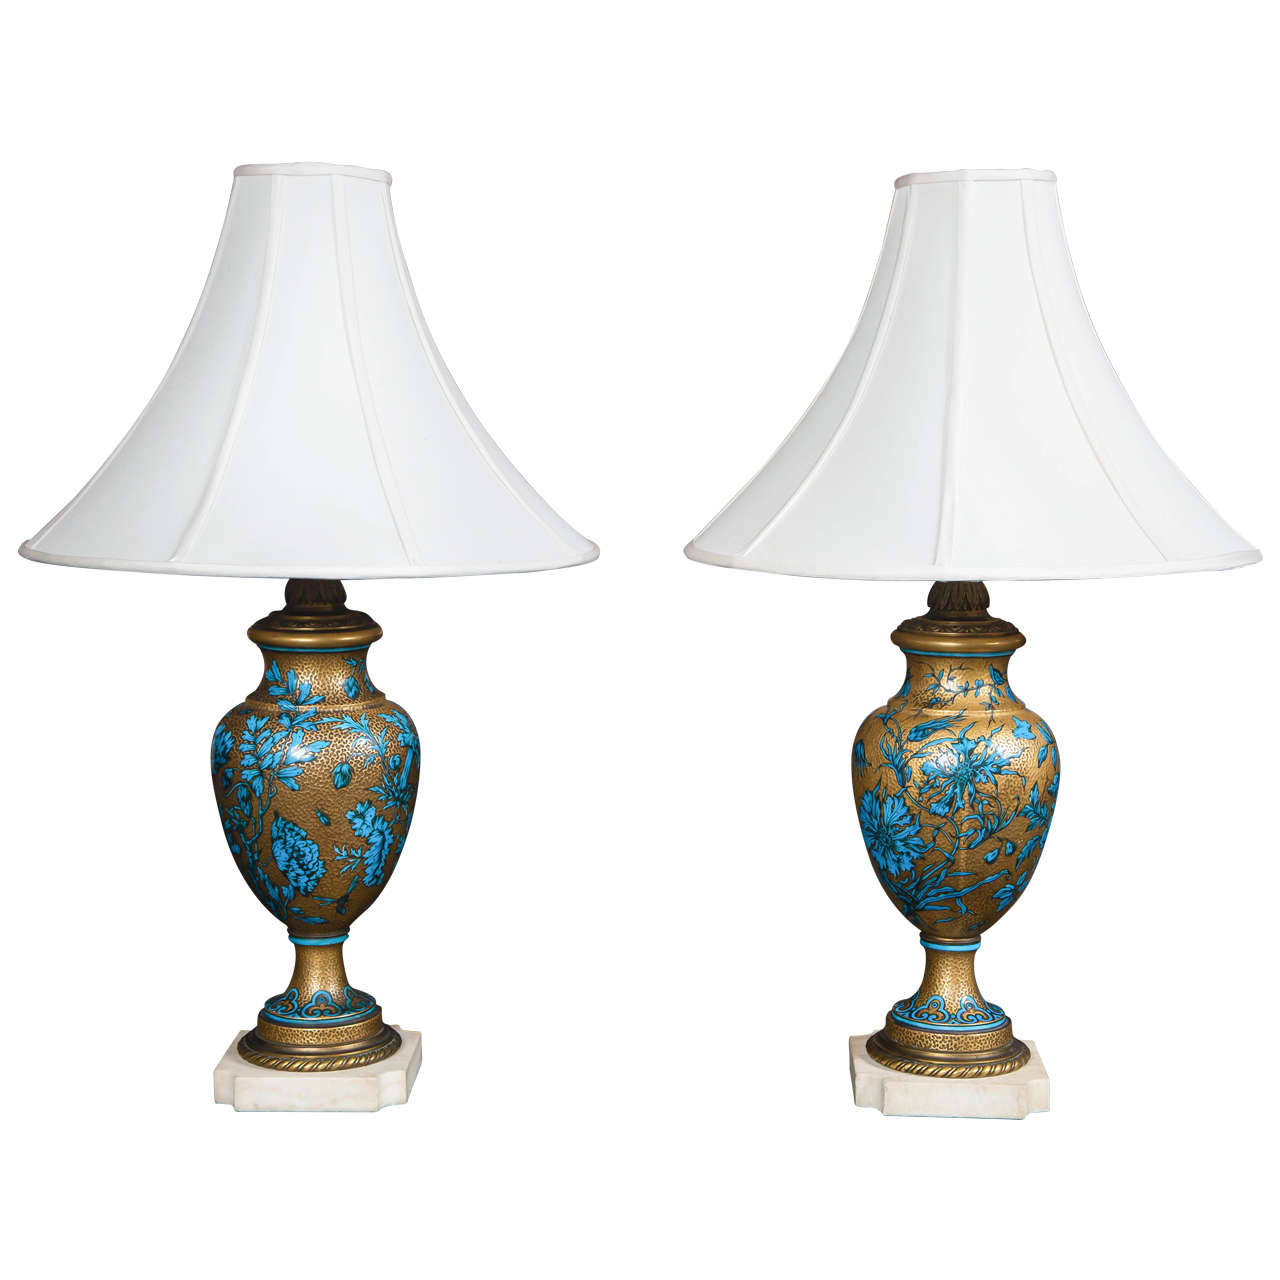 Pair Of Porcelain Bronze Mounted Urns As Lamps At 1stdibs